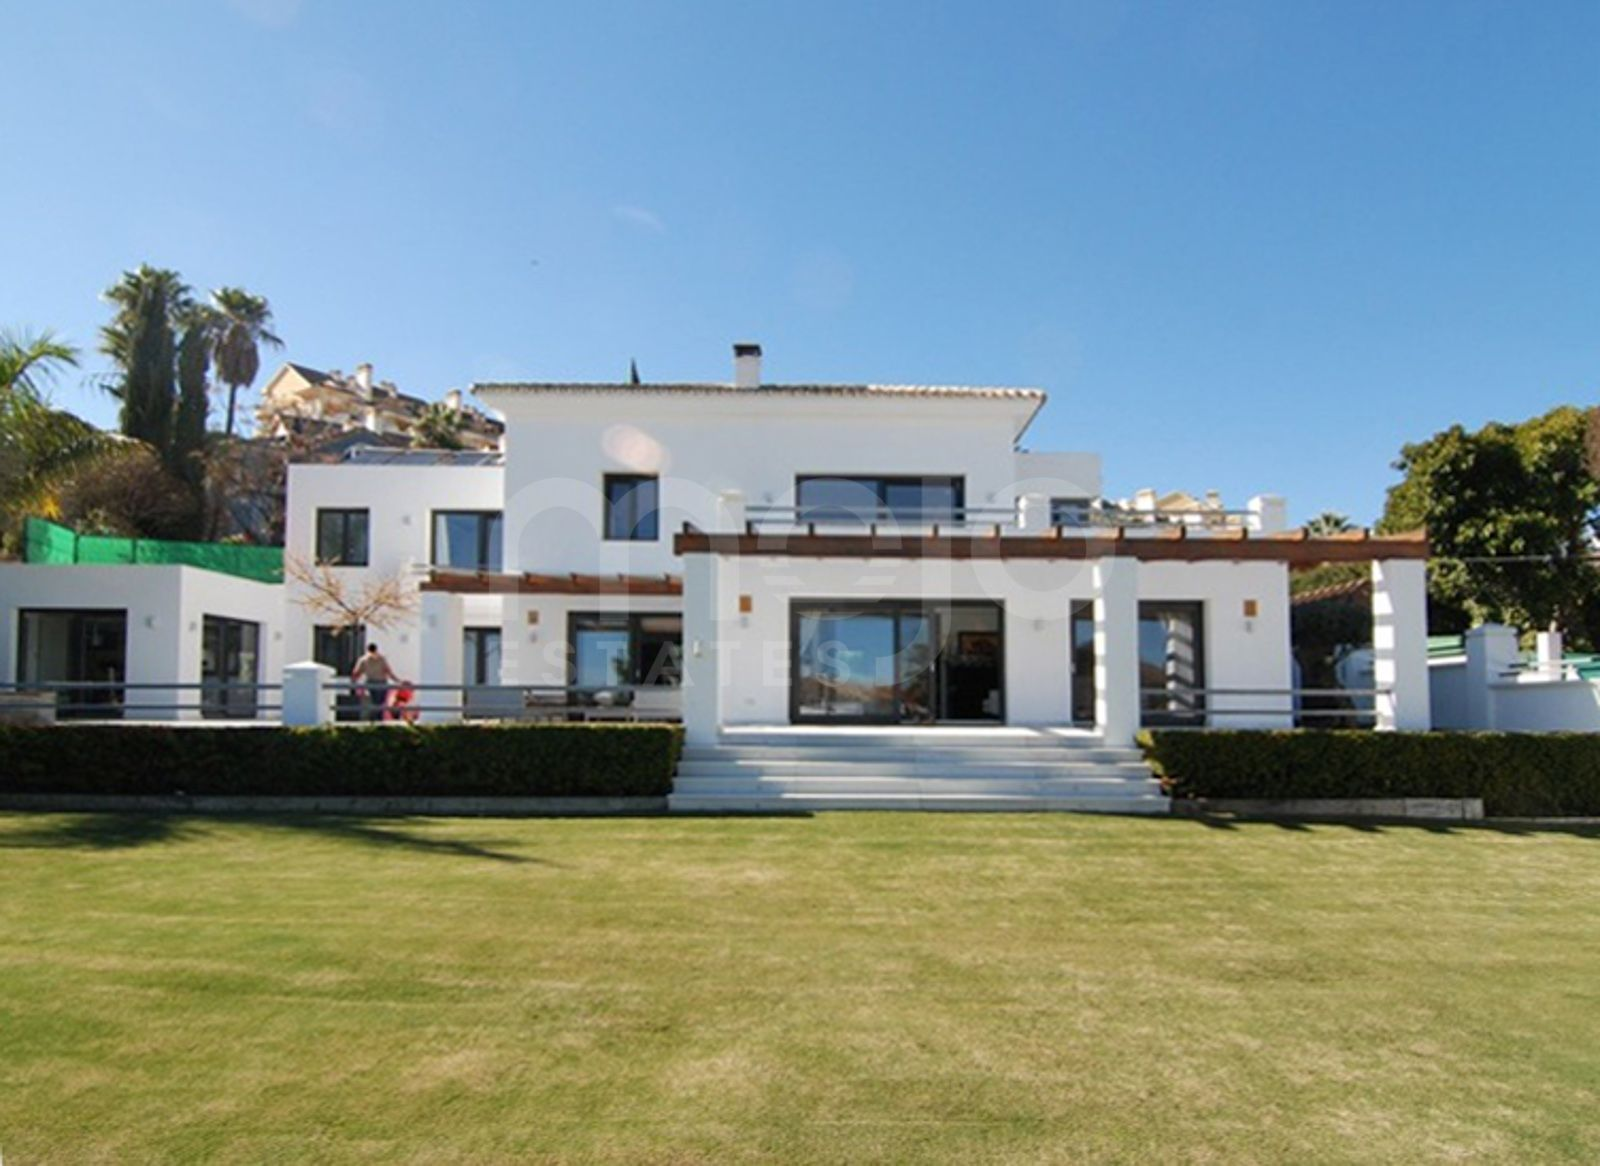 Ideally located marvellous villa in Nueva Andalucía, walking distance to Centro Plaza and Puerto Banus.